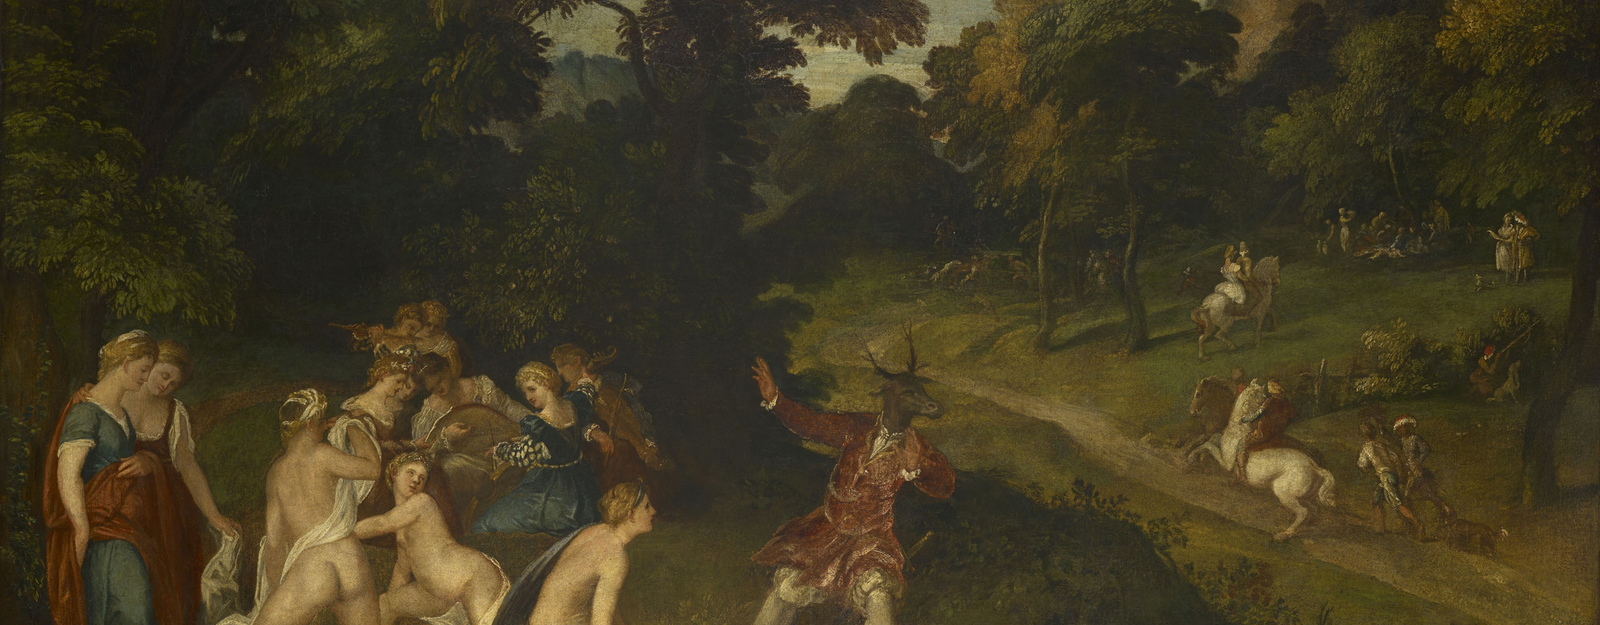 The story of the hunter Actaeon's accidental discovery of Diana and her nymphs bathing is told in Ovid's 'Metamorphoses'. Furious at his intrusion into their grotto, Diana turns Actaeon into a stag, and he is chased and killed by h